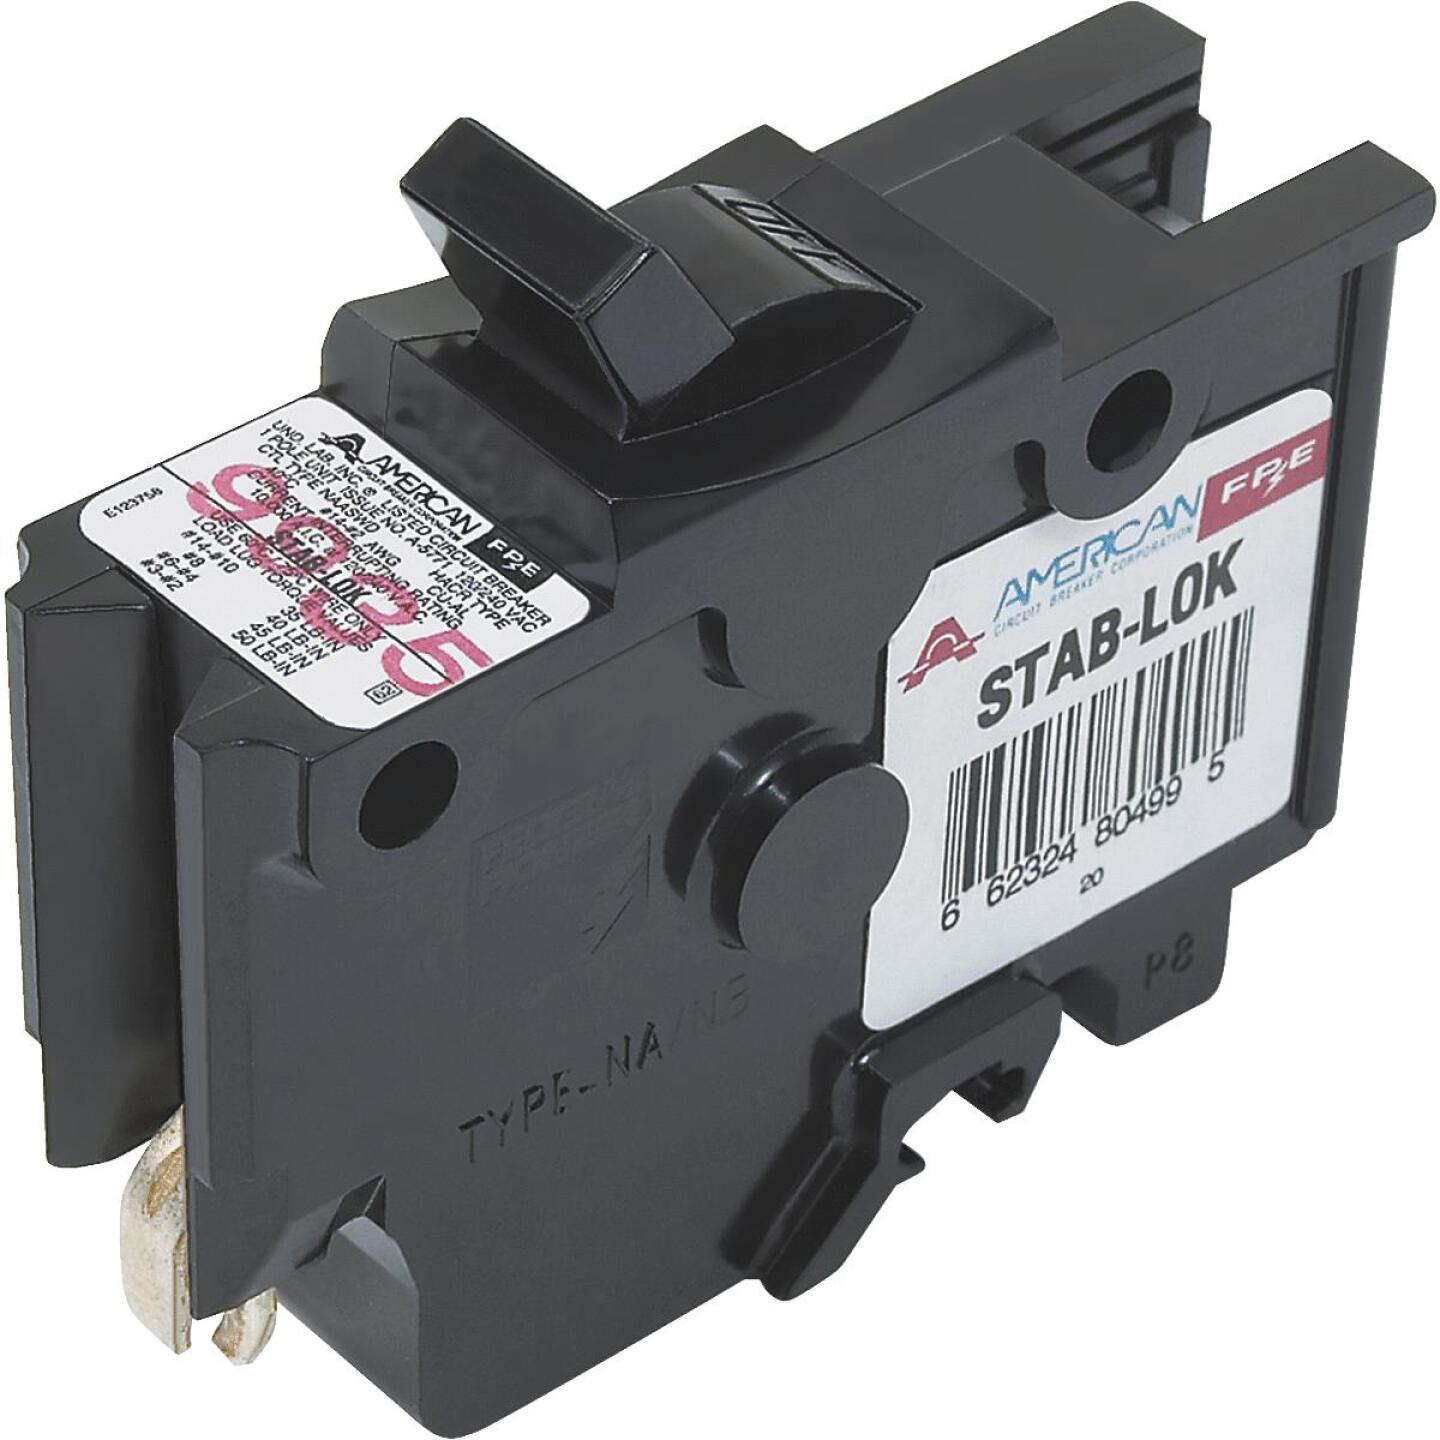 Connecticut Electric 40A Single-Pole Standard Trip Packaged Replacement Circuit Breaker For Federal Pacific Image 1